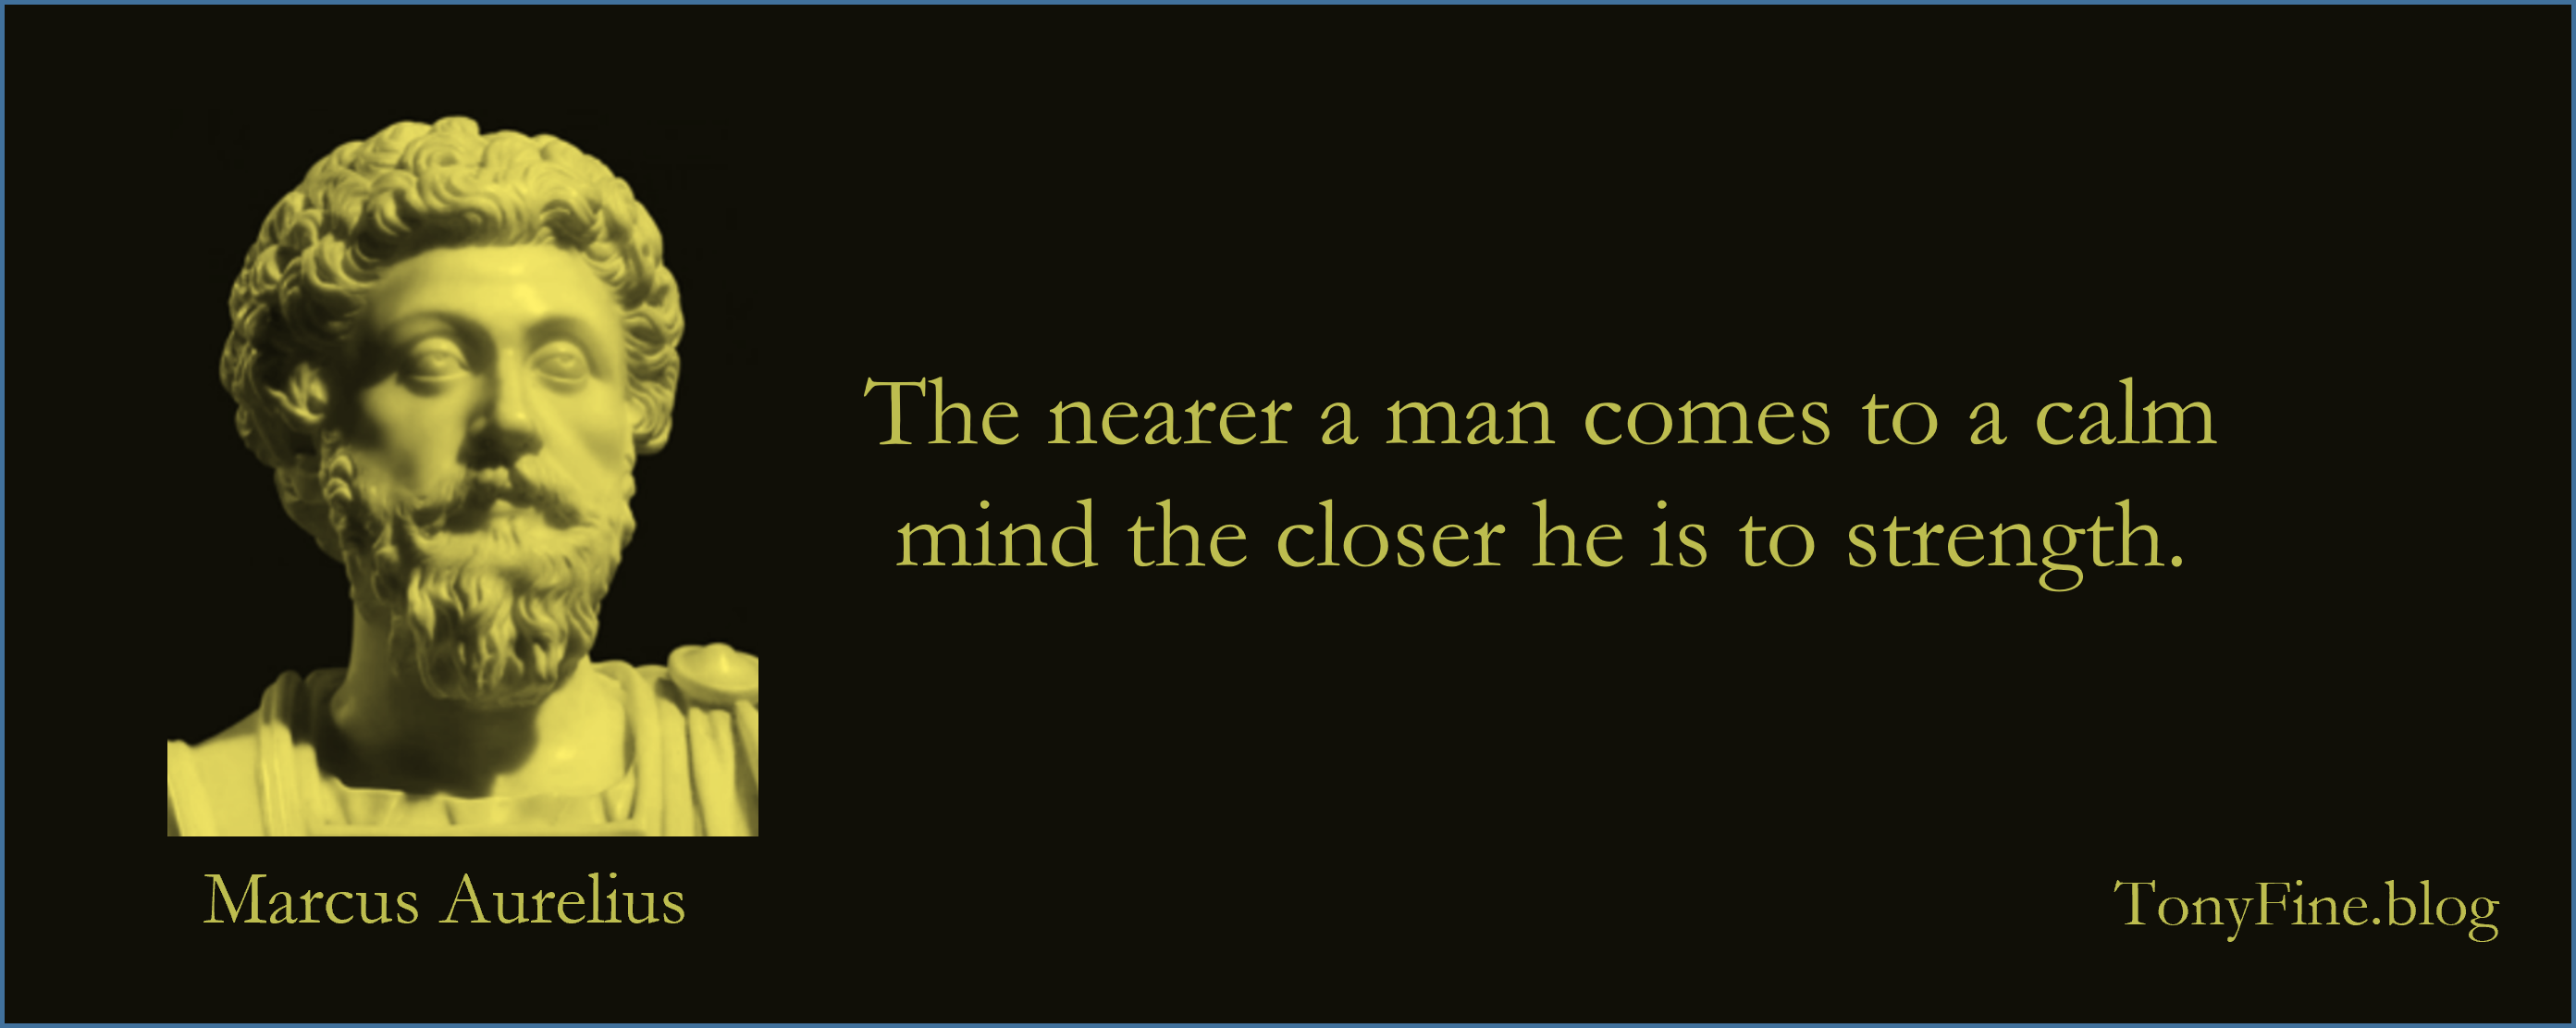 """""""The nearer a man comes to a calm mind the closer he is to strength. -Marcus Aurelius"""